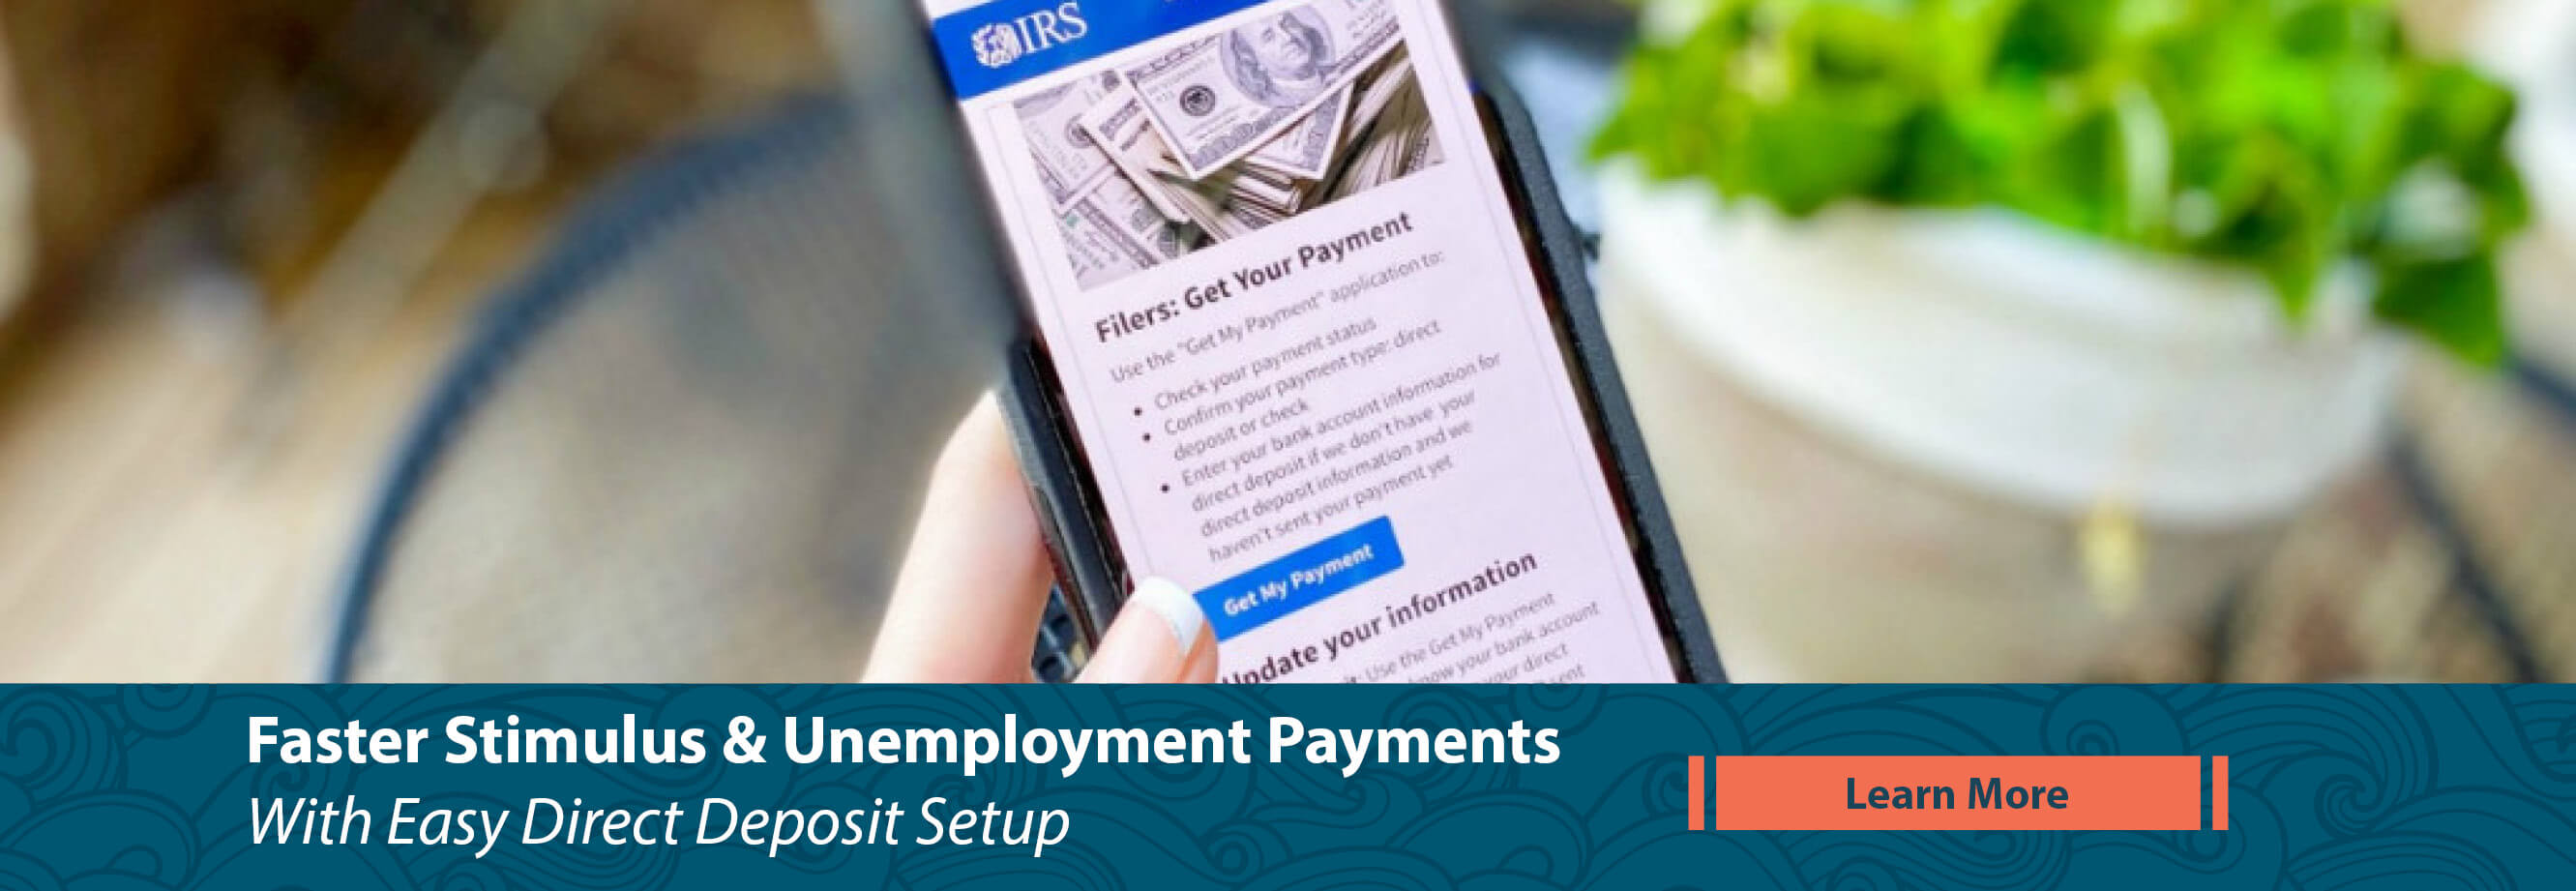 Get Stimulus & Unemployment Payments Faster